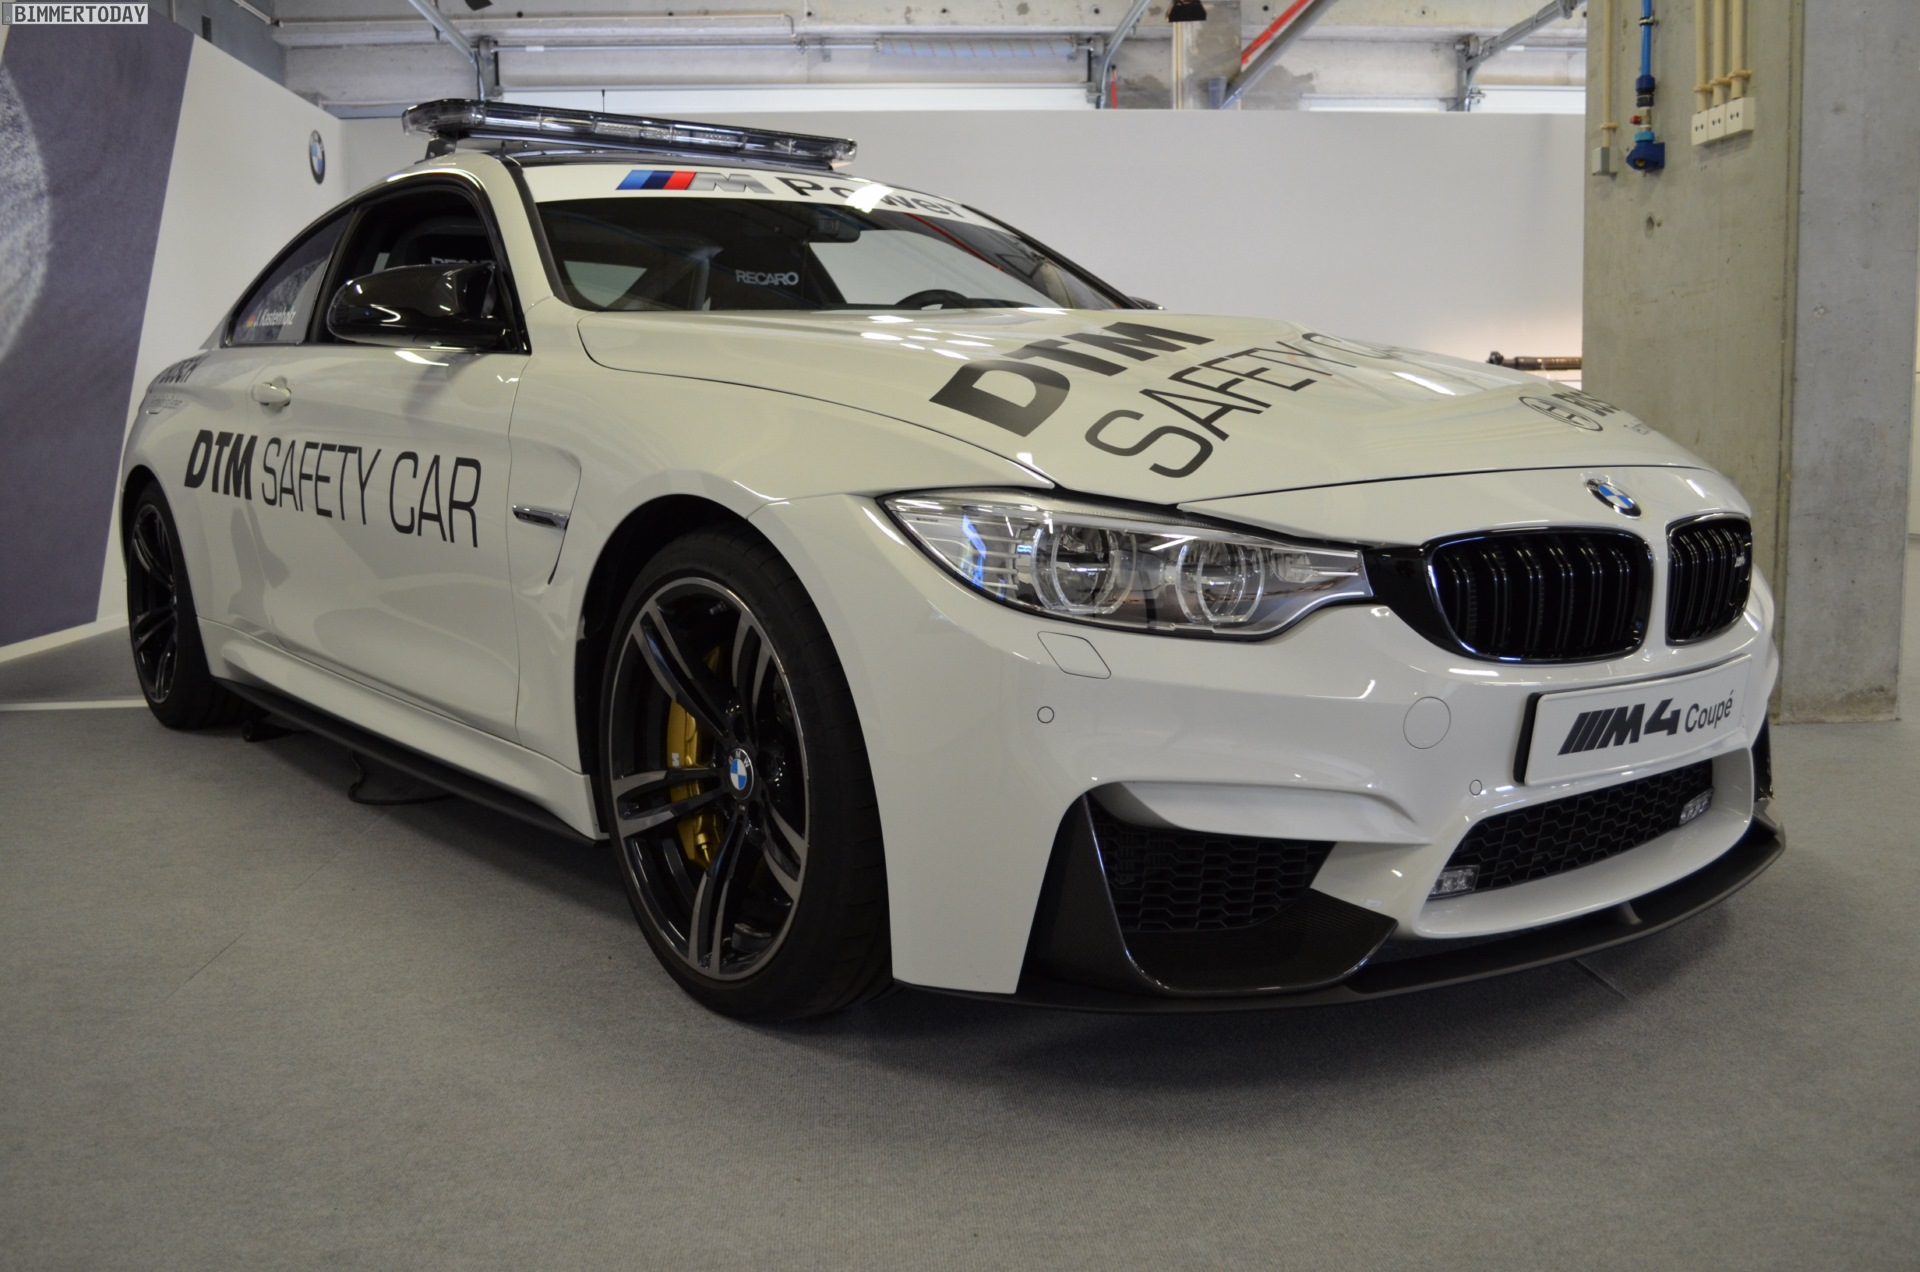 2019 BMW M4 Coupe DTM Safety Car photo - 2